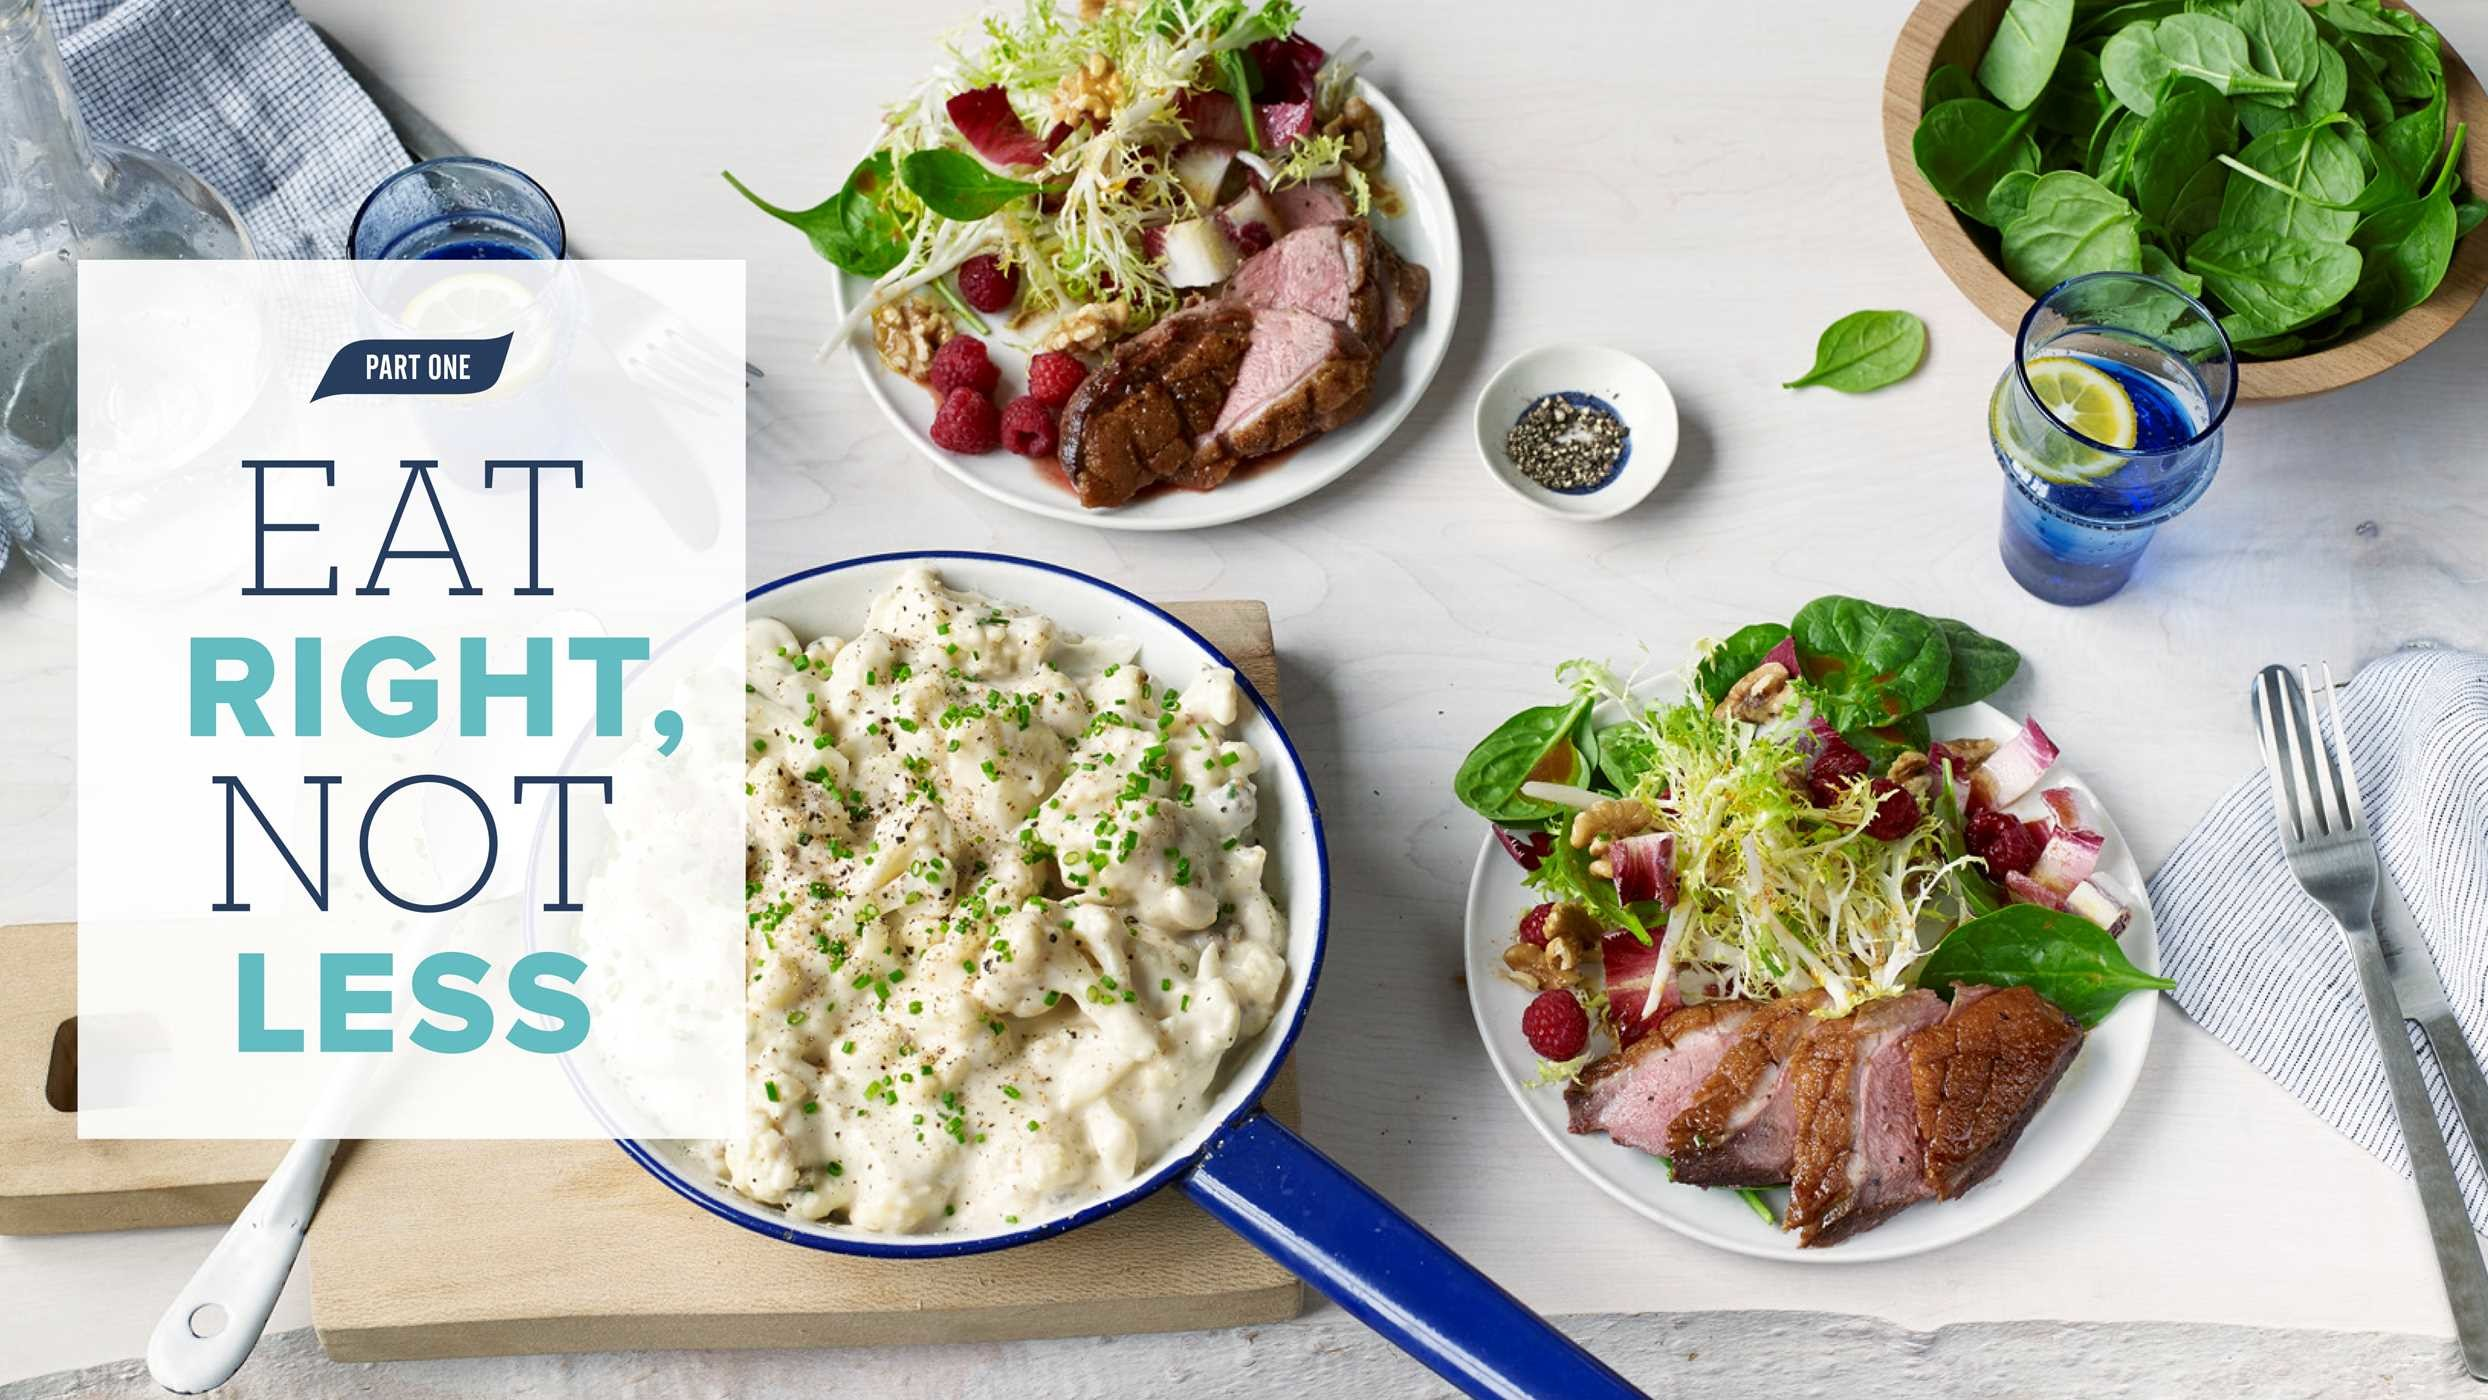 Atkins eat right not less 9781501175442.in01